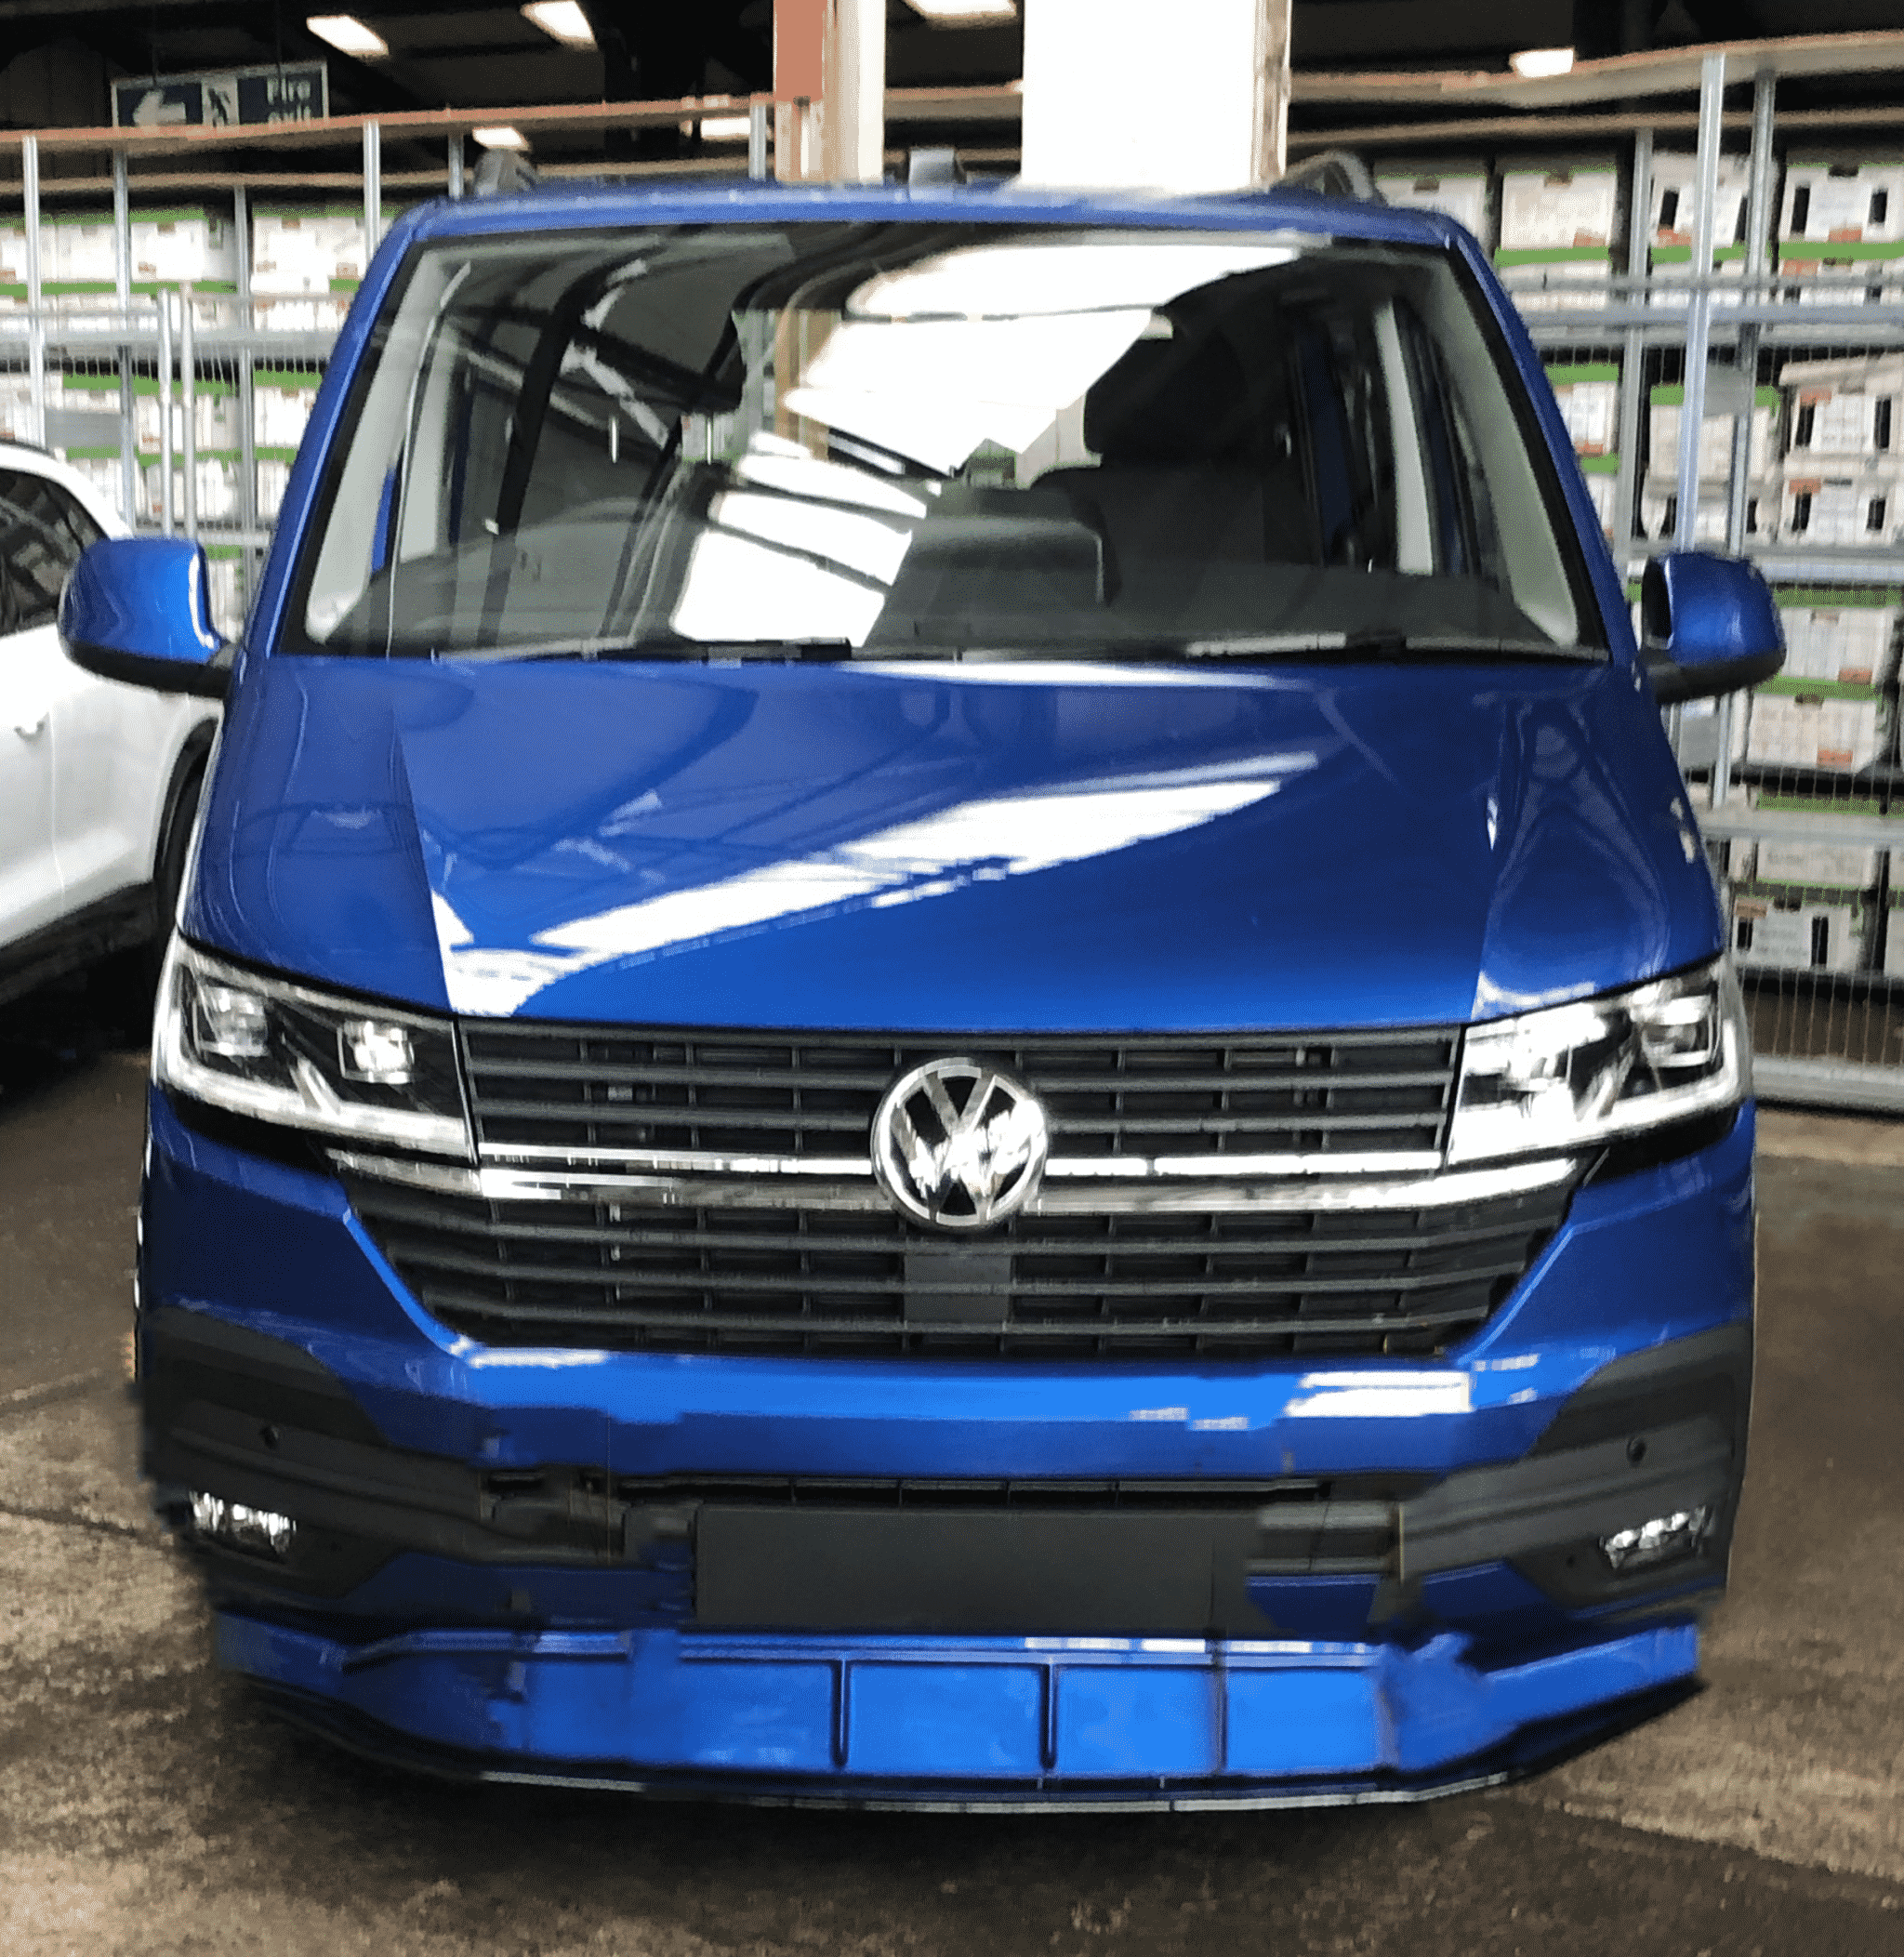 VW Transporter Sportline WASP Blue Swiss Vans 2020